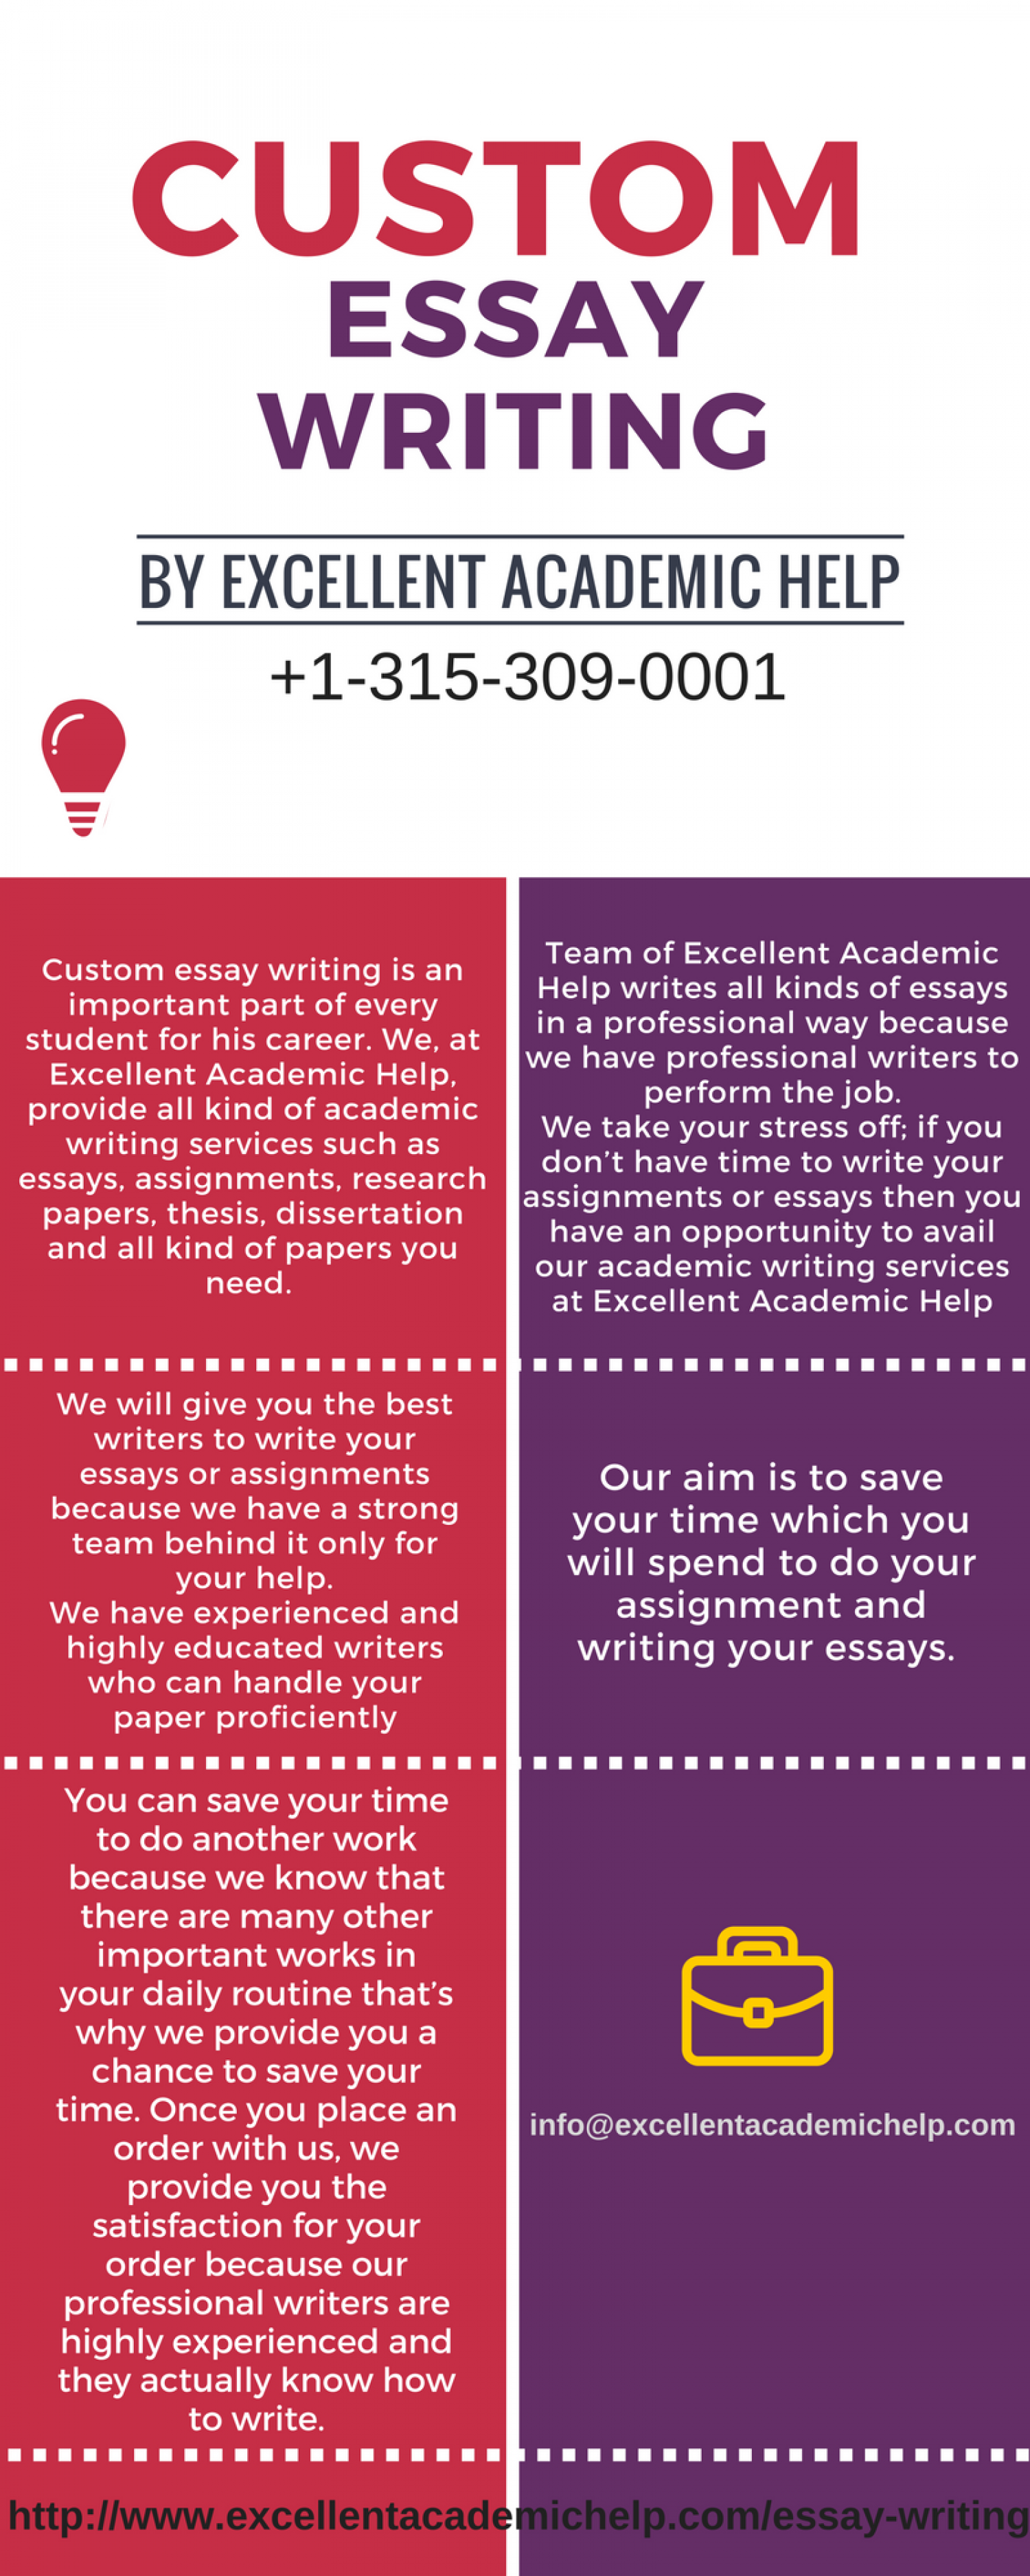 customized essay writing com many students from all around the world have already entrusted us writing their essays and thats because its who we are we aim at satisfying all our